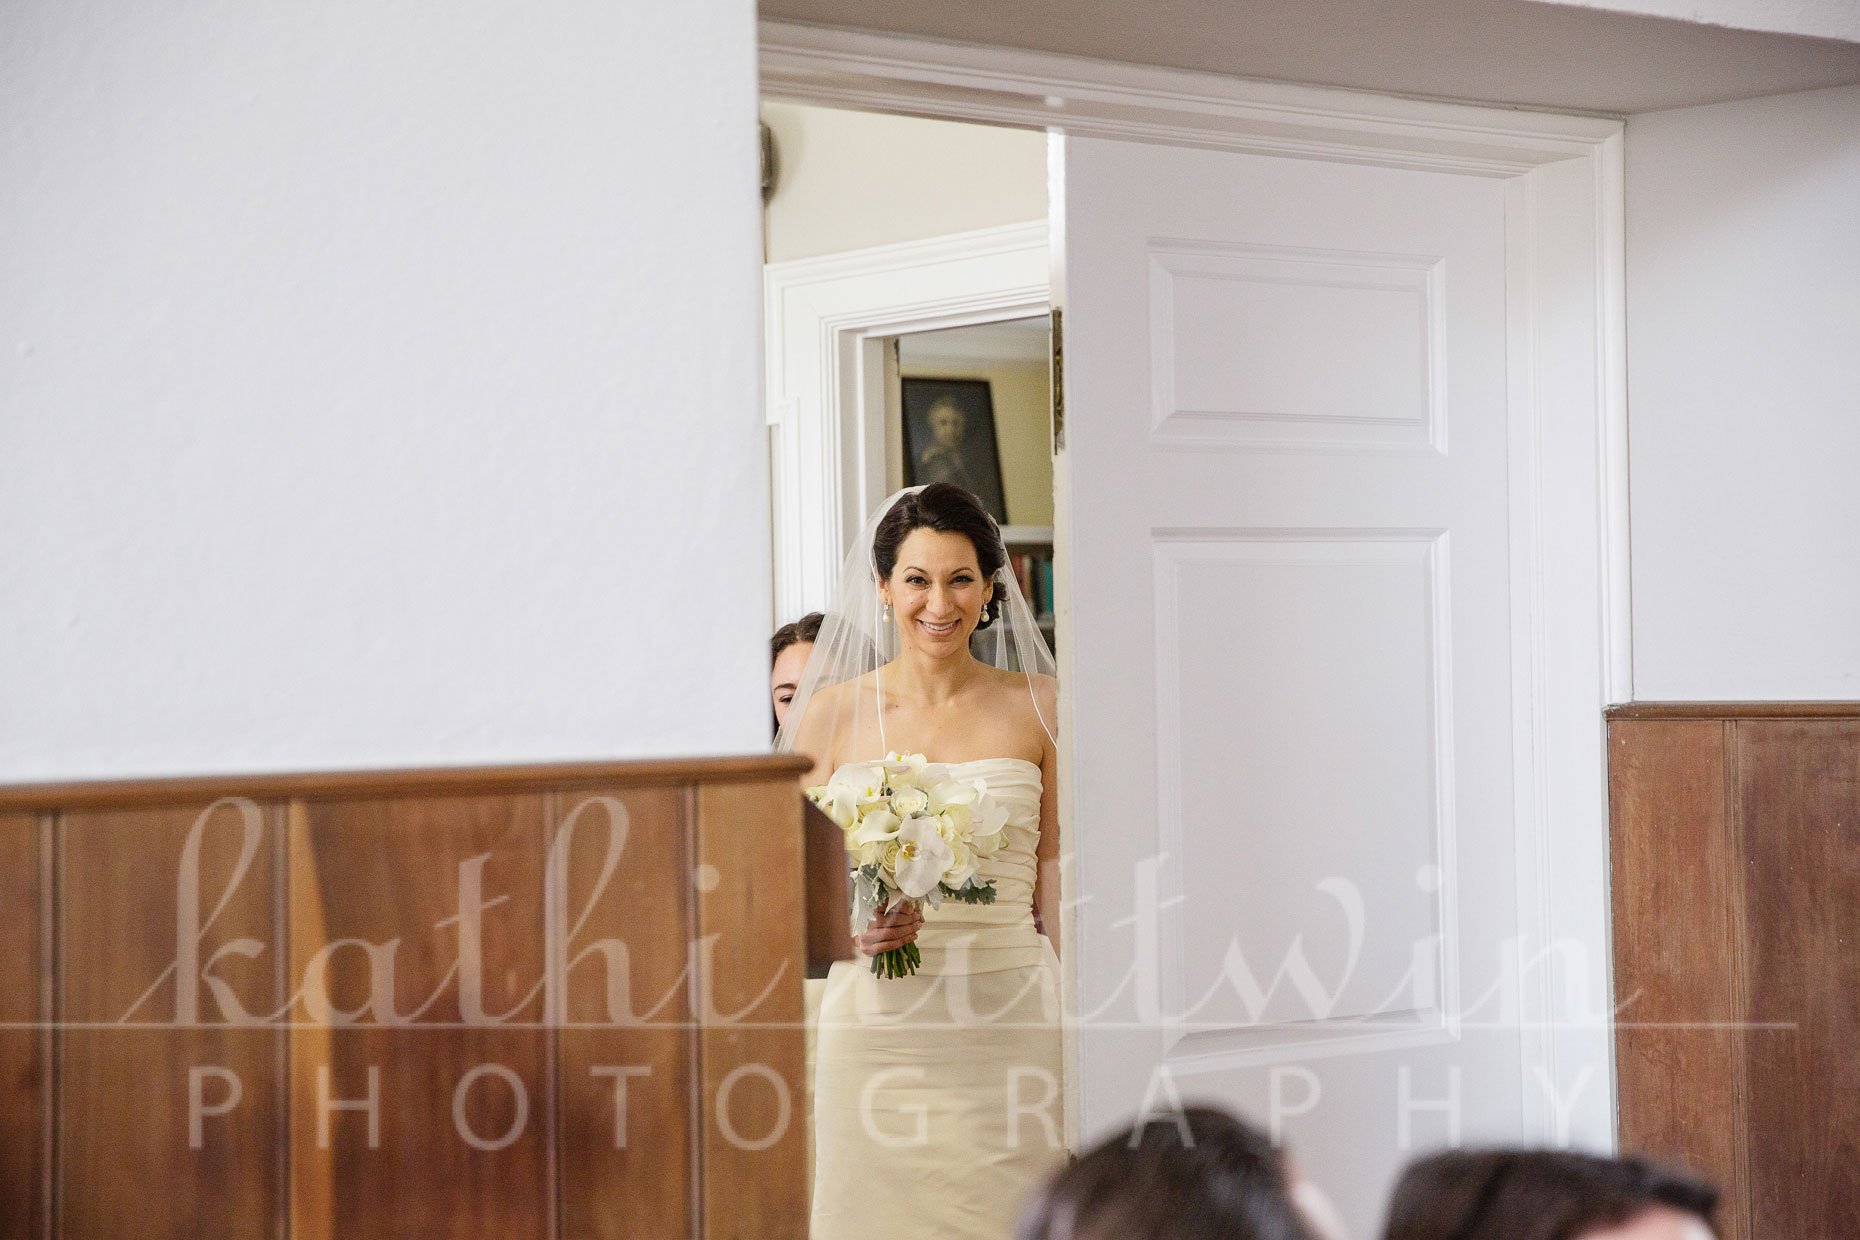 Kathi_Littwin_Photography_2055